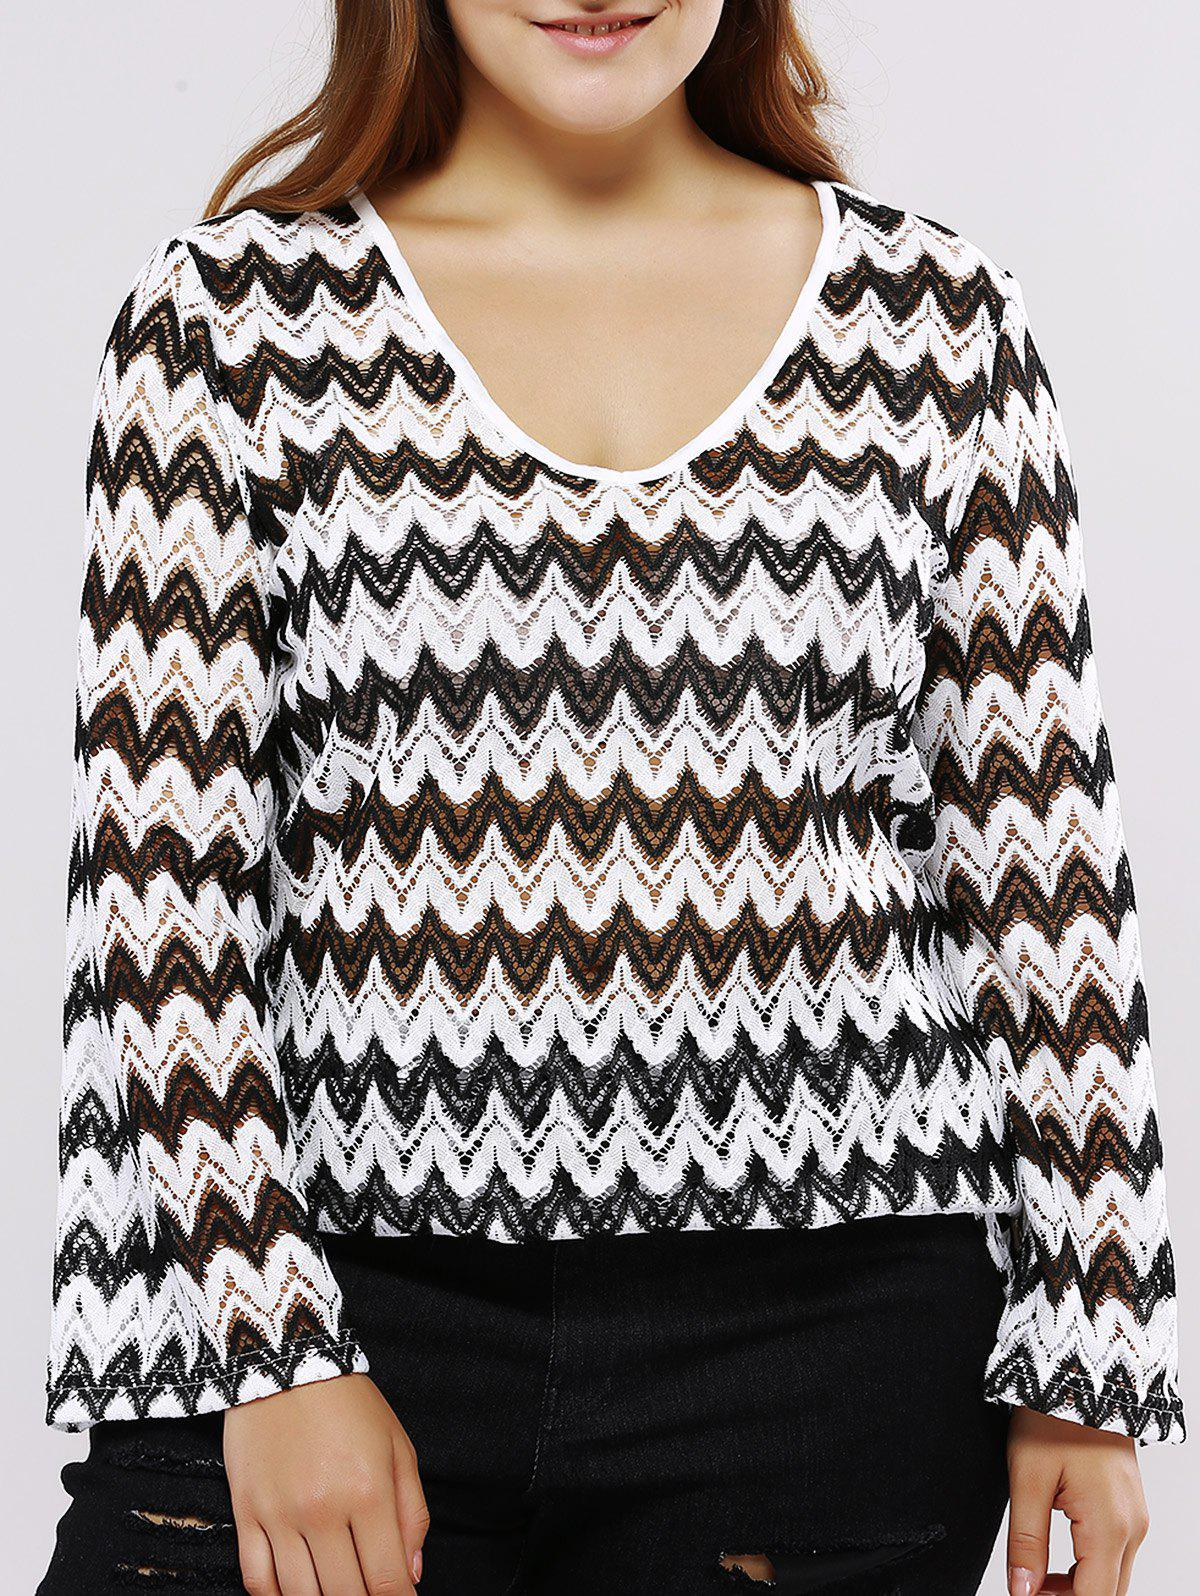 Oversized Casual Low Cut Chevron Pattern Blouse - WHITE/BLACK 3XL